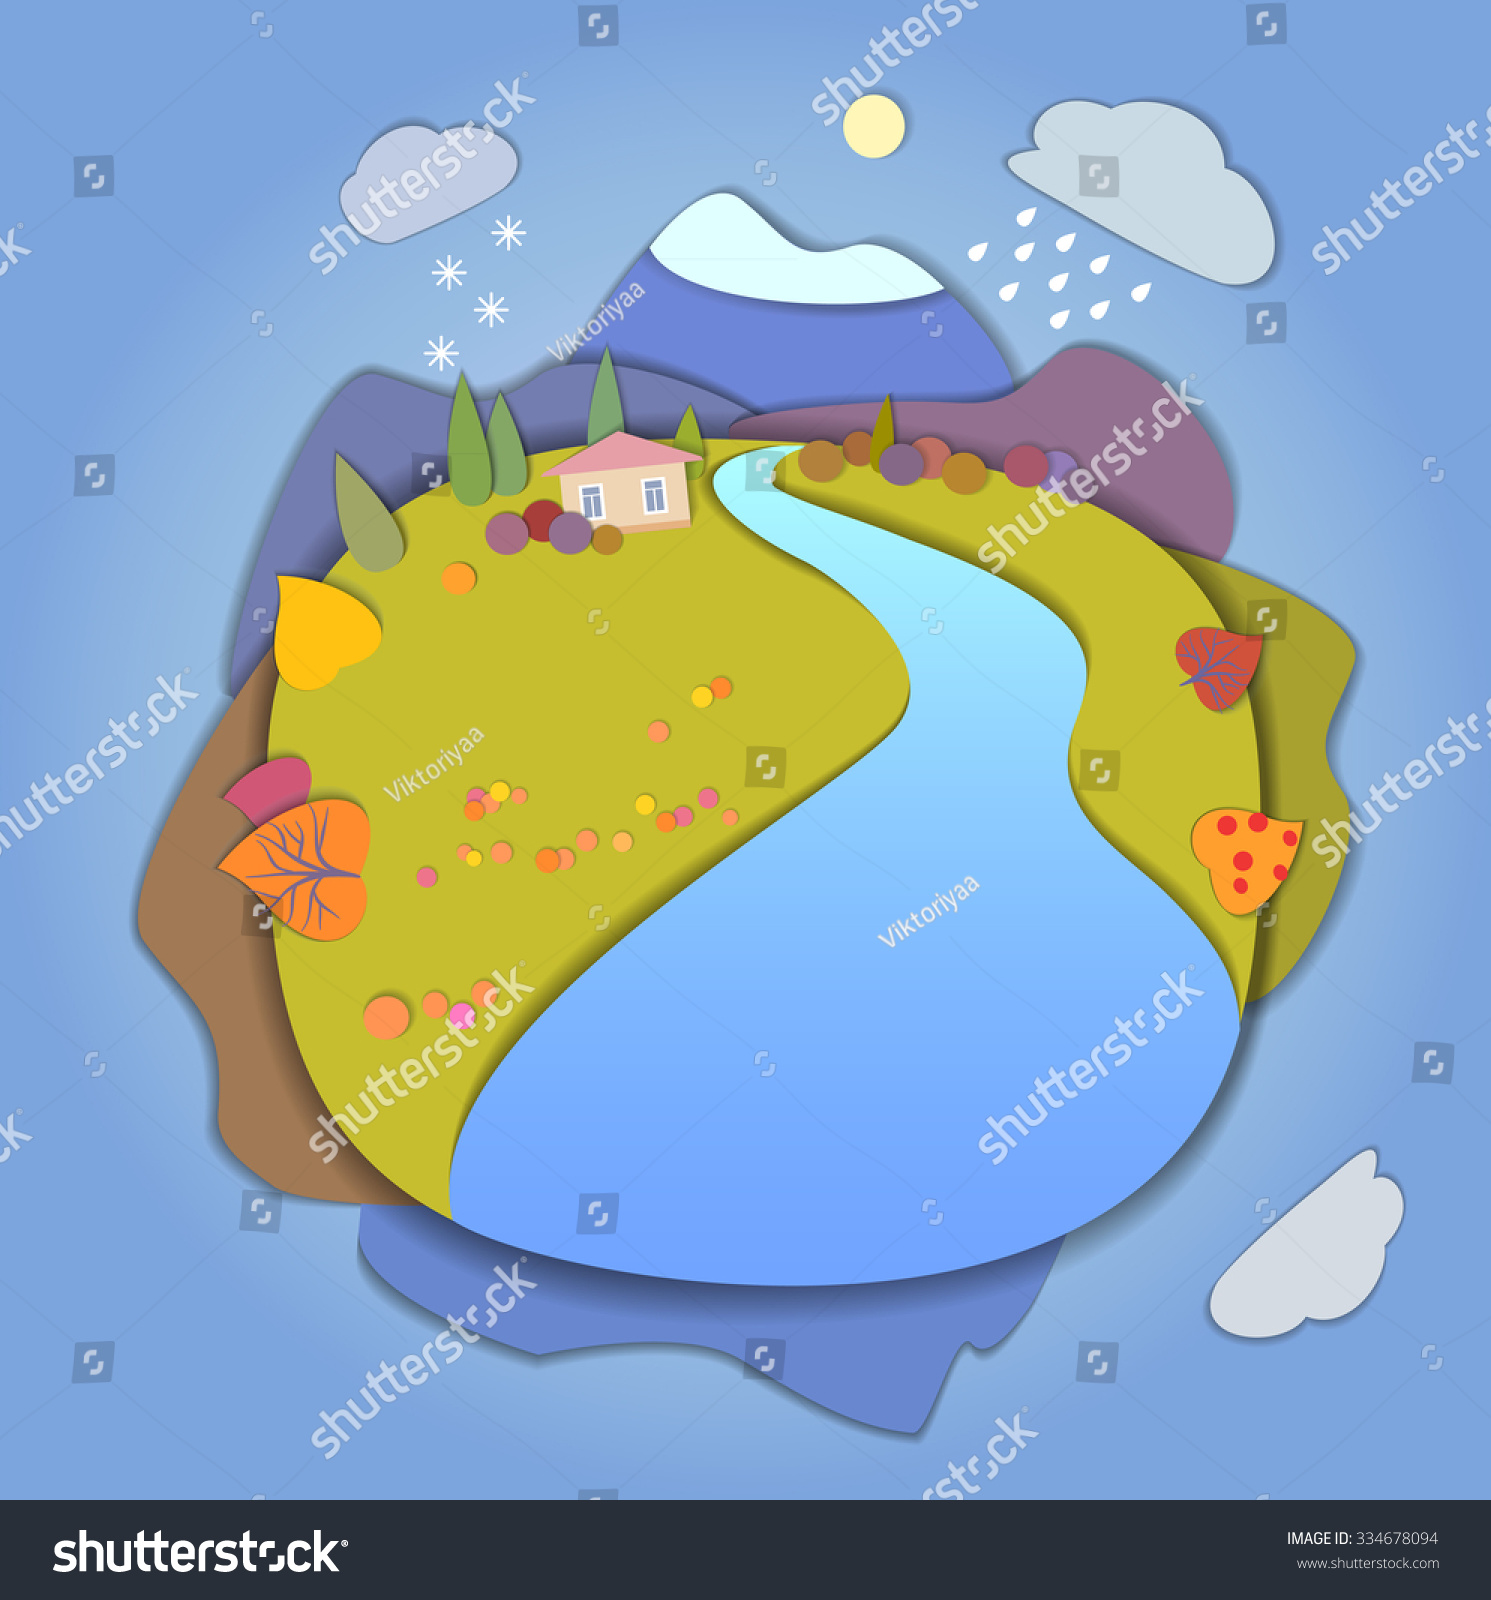 Schematic Representation Of The Global Water Cycle In Nature Illustration Of The Hydrologic